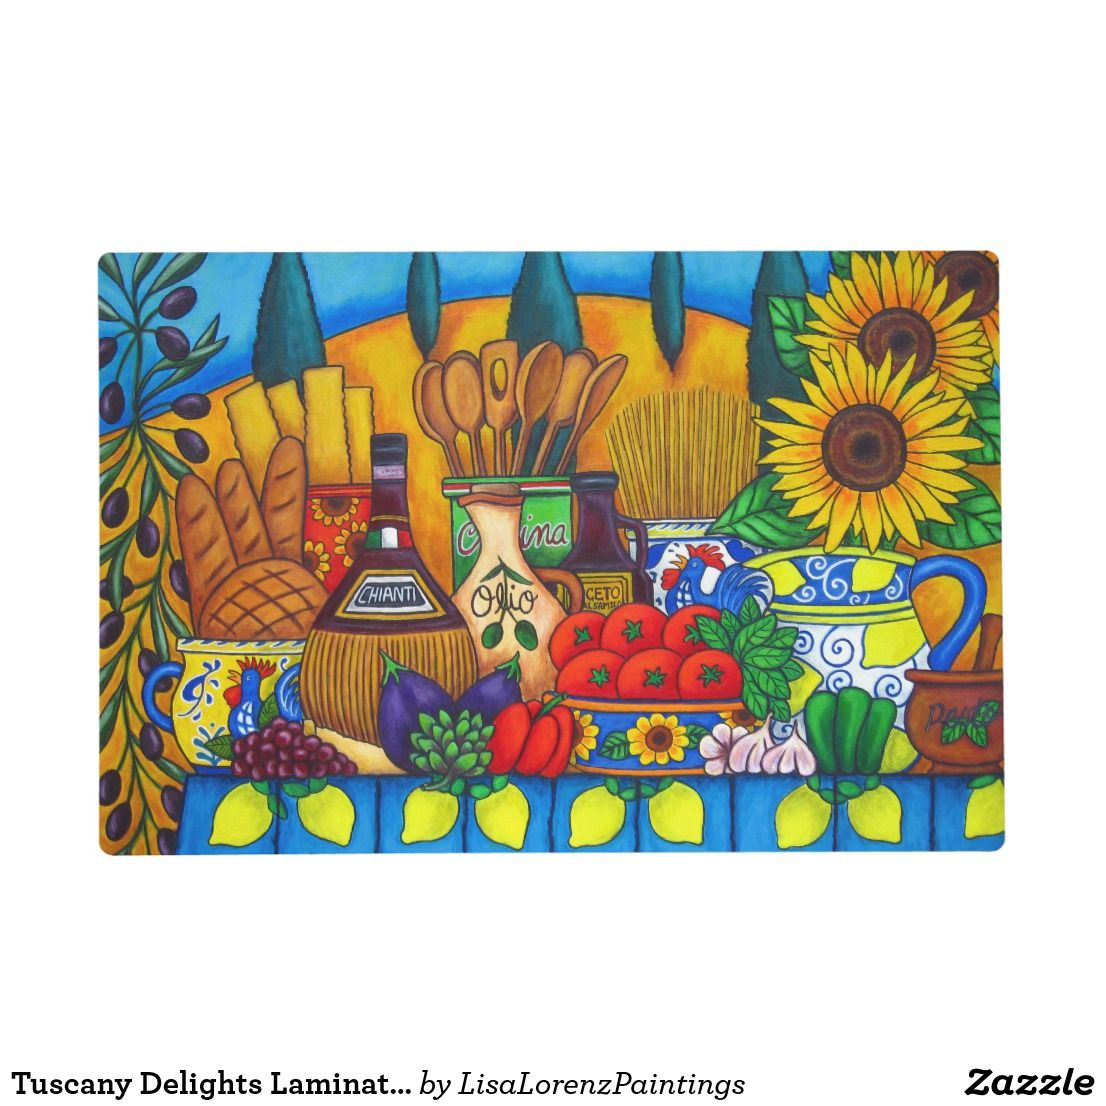 Tuscany Delights Laminated Placemat Placemat